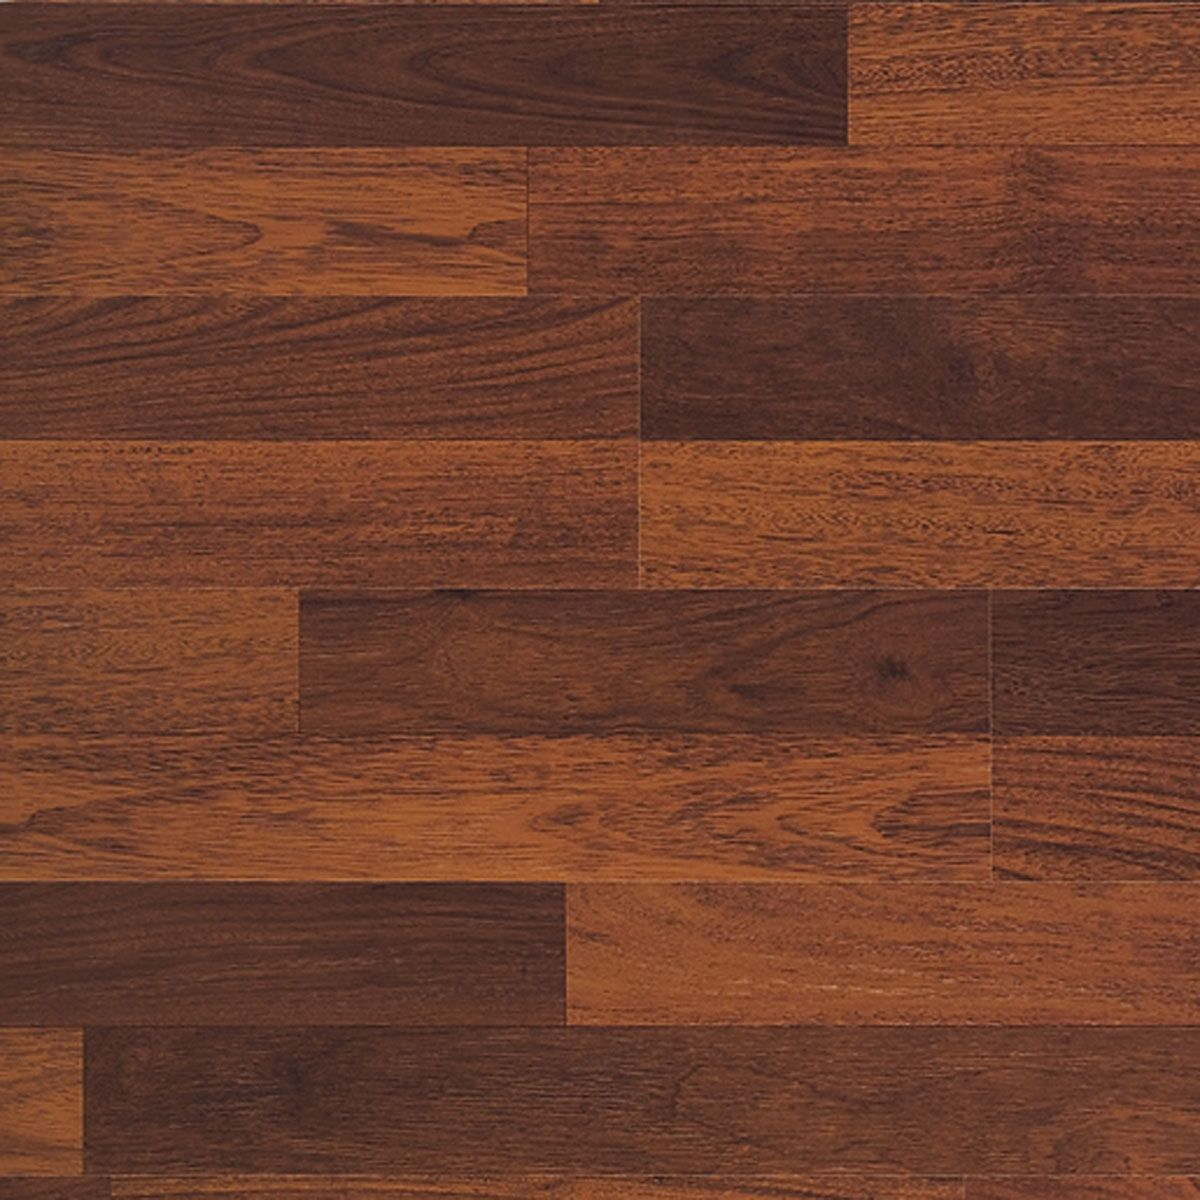 Quick Step Laminate Flooring Brazilian Cherry Home Laminate Hardwood Flooring Laminate Wood Flooring Cost Faux Wood Flooring